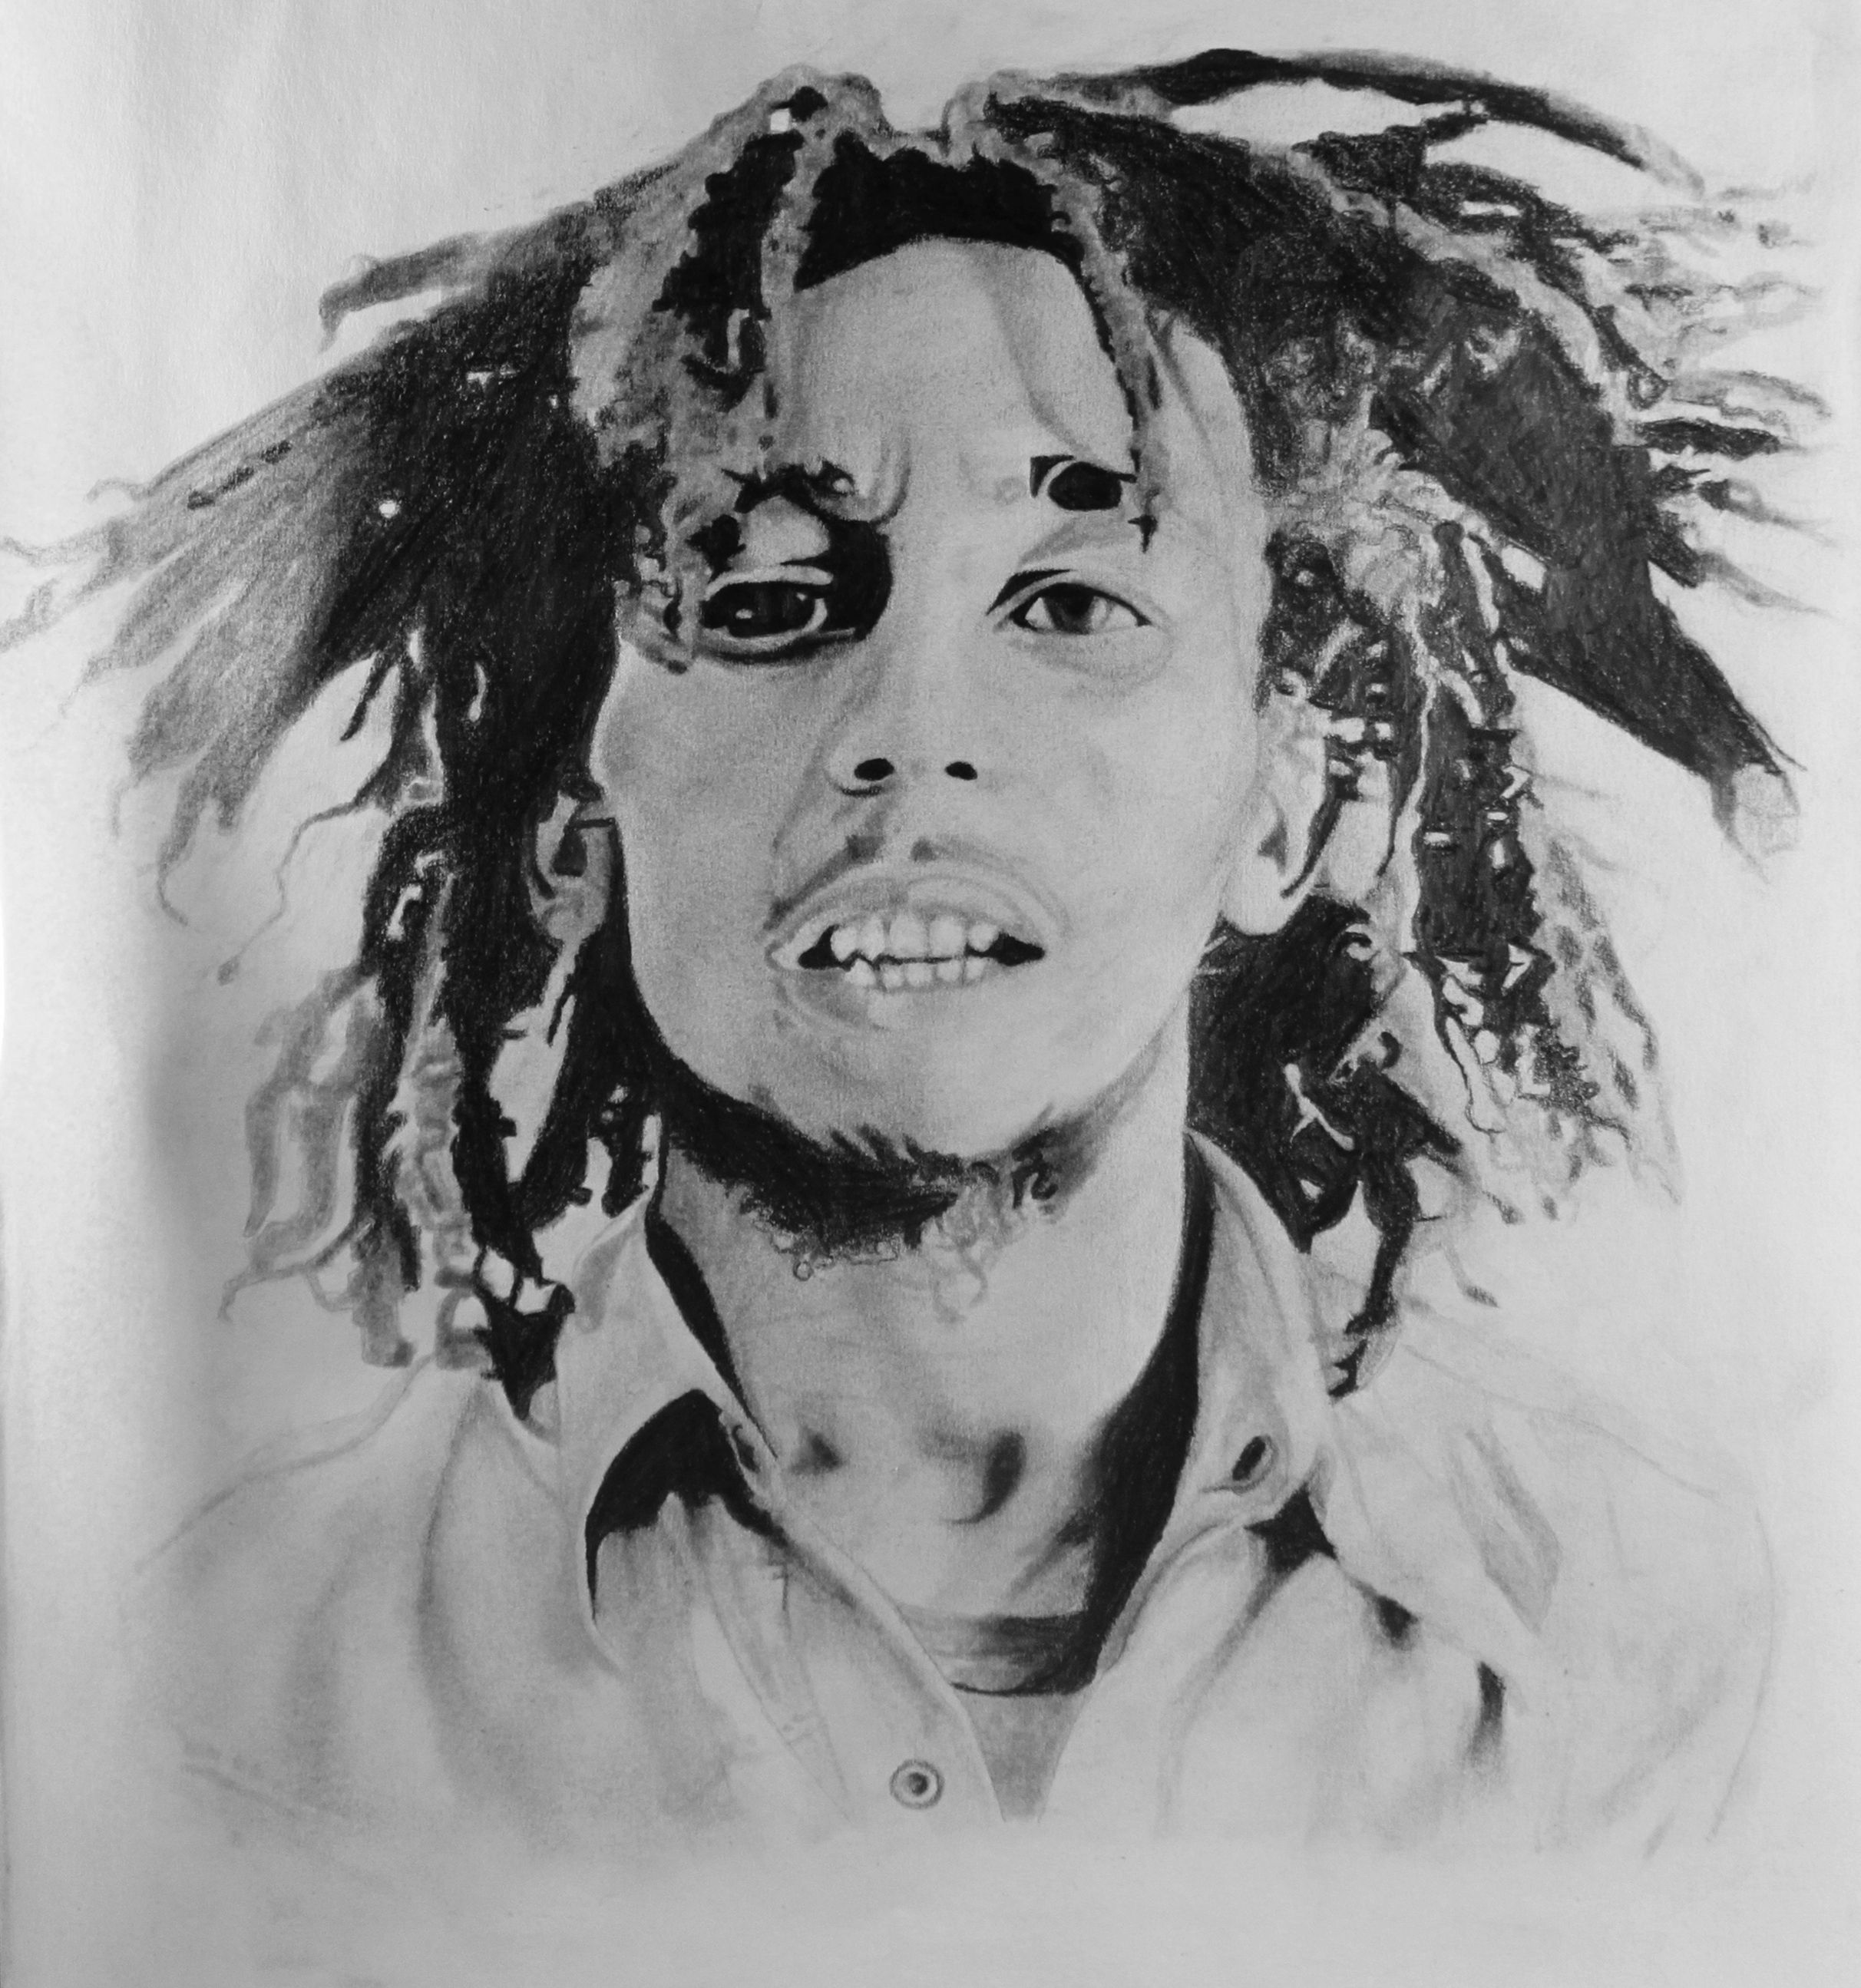 Bob marley drawing portrait realism pencil grayscale monochromatic dreads